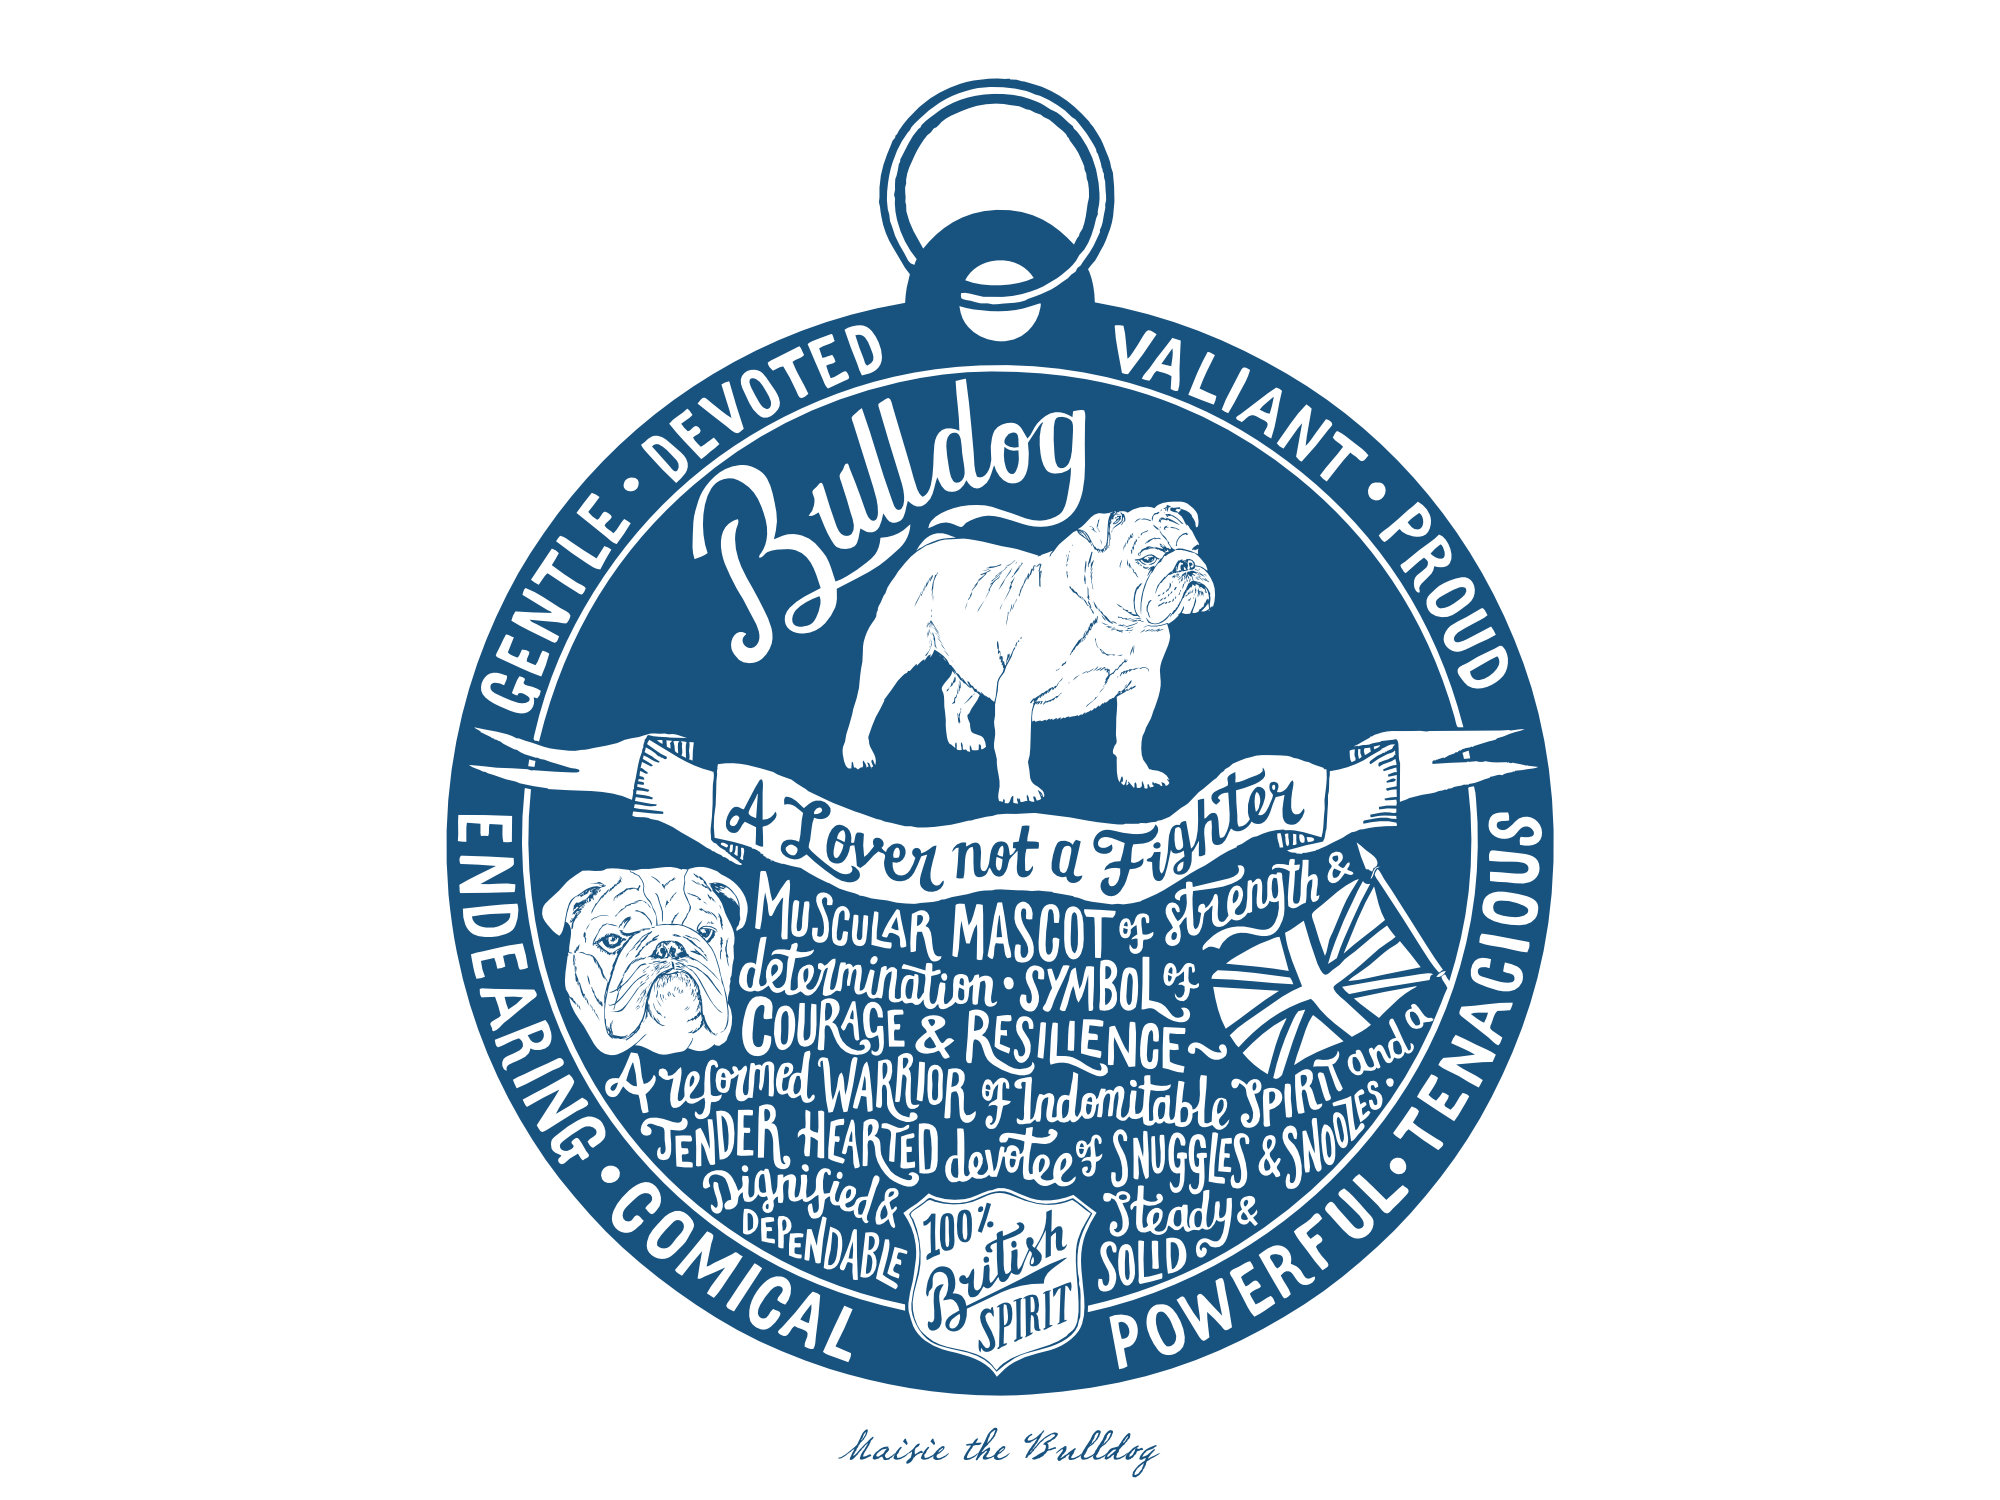 Bulldog print - Hand lettering & Illustration by Debbie Kendall